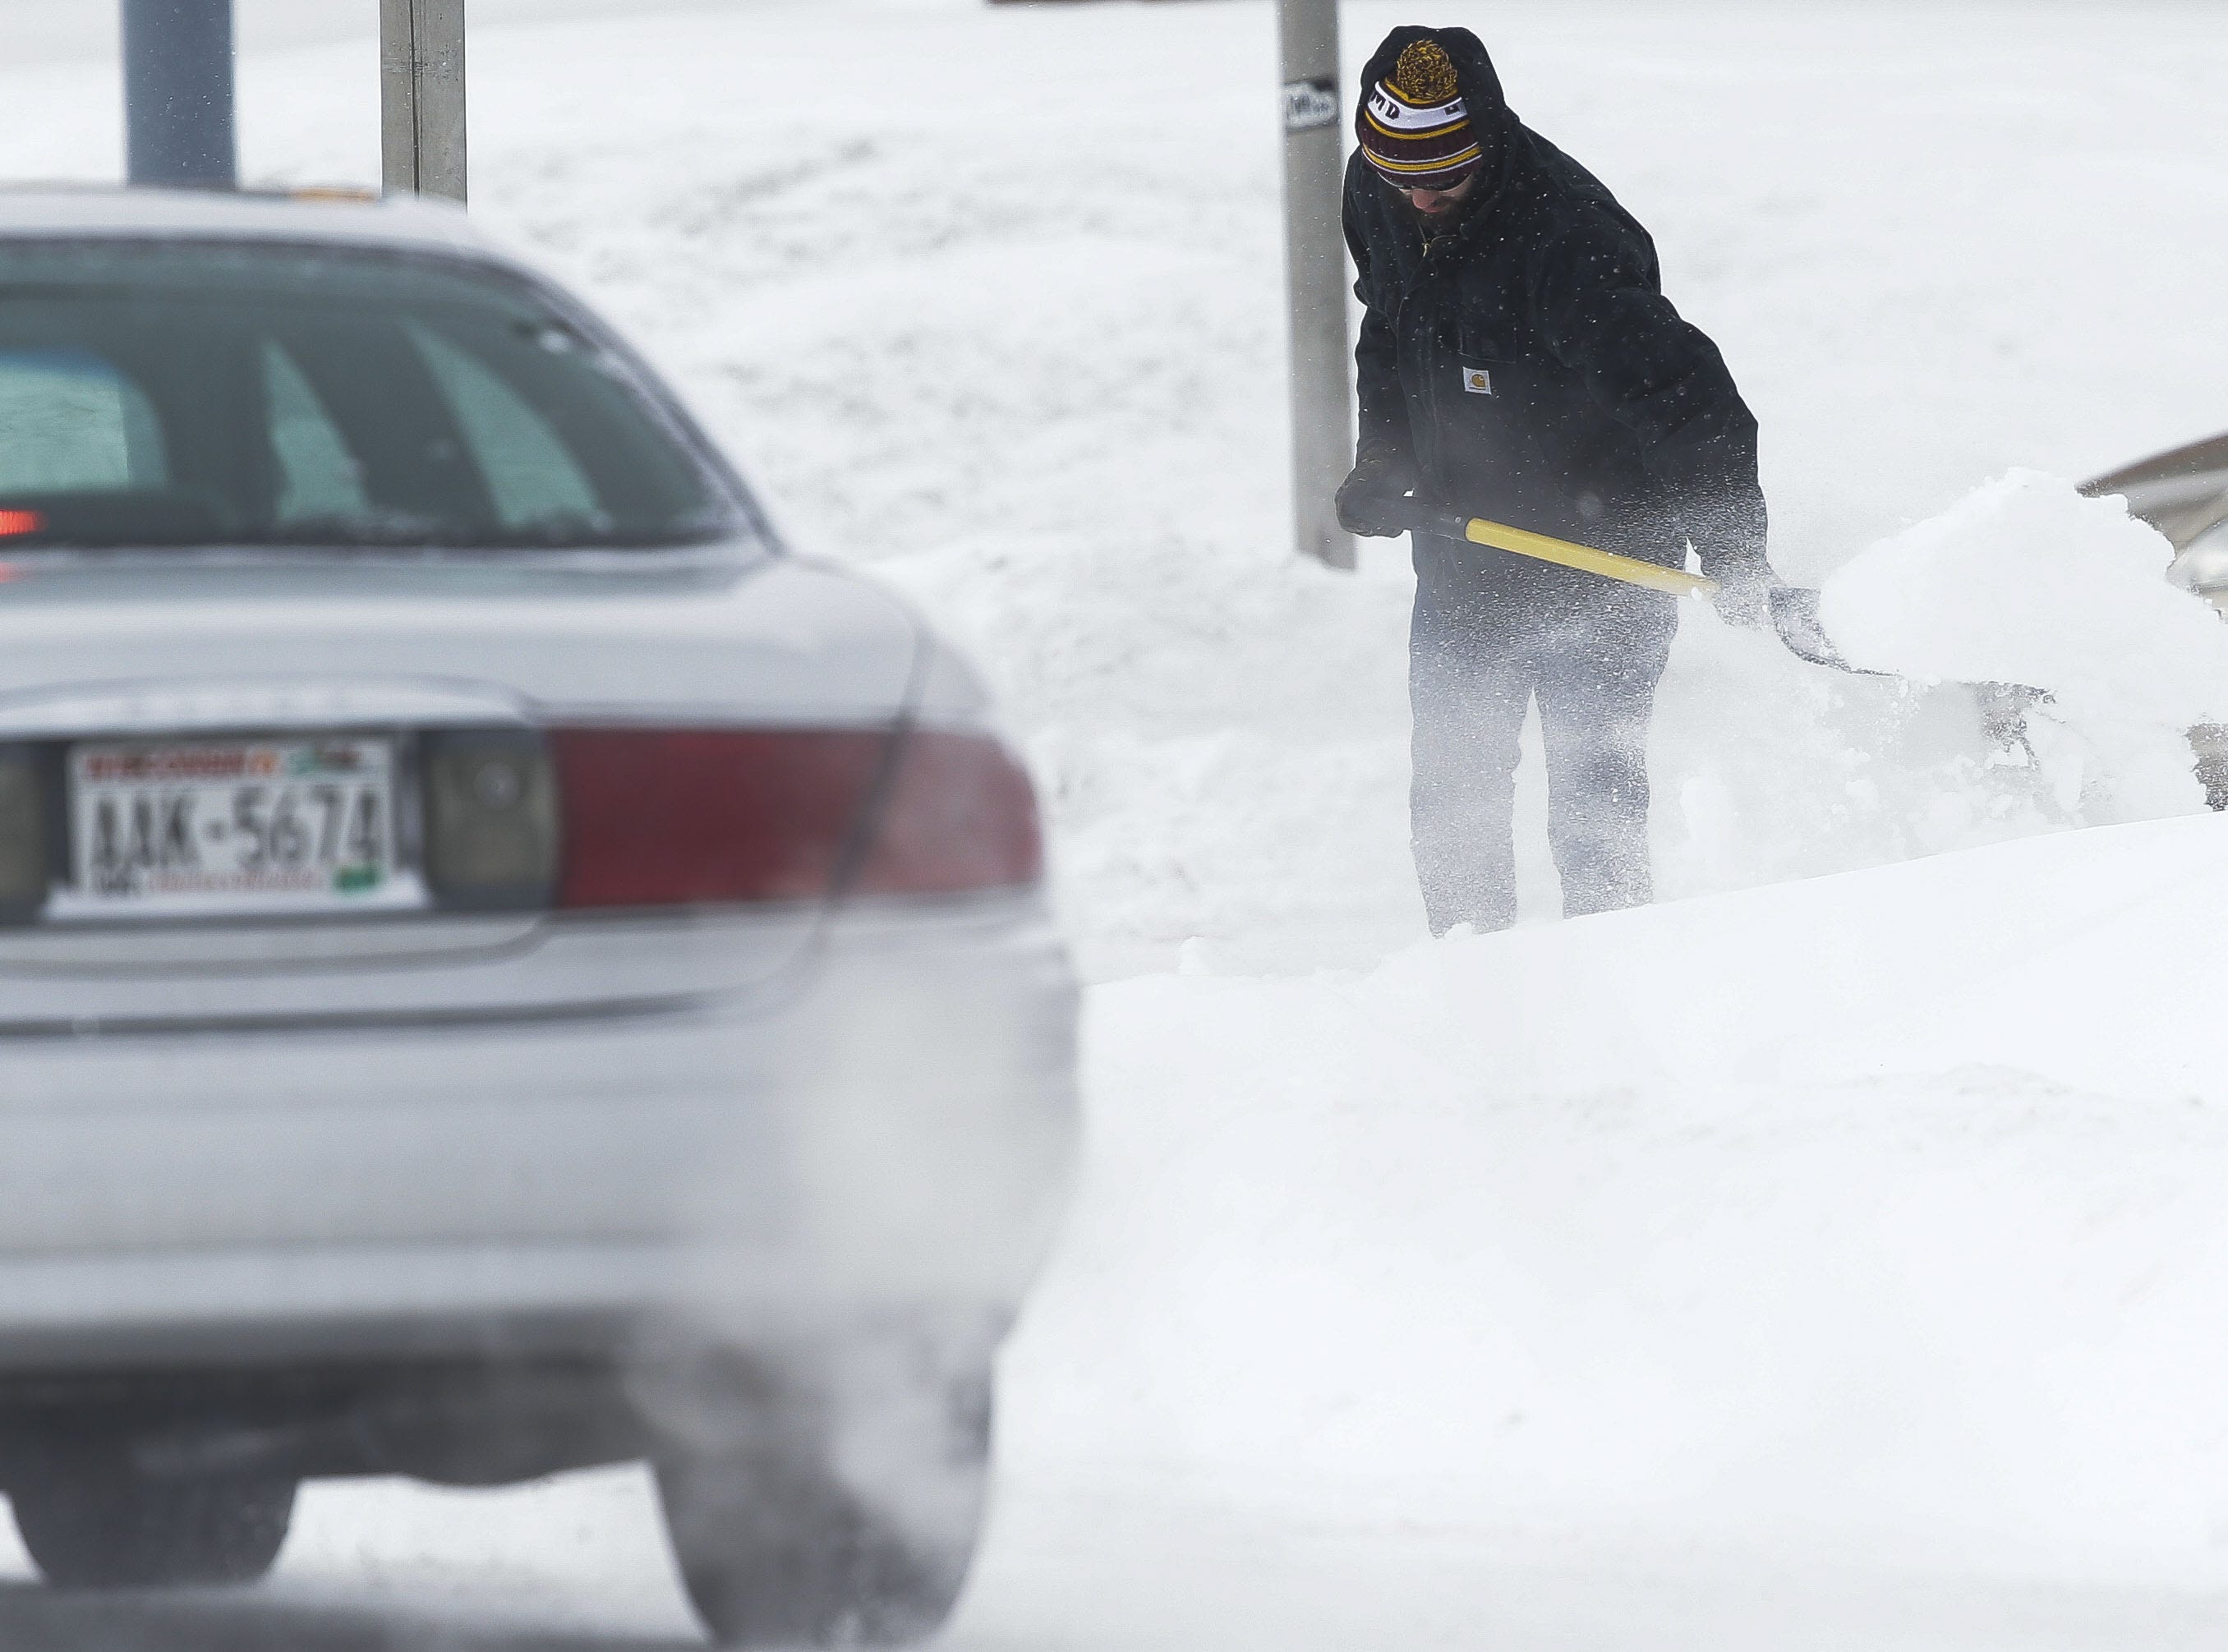 Colin Filtz shovels snow on Monday, Jan. 28, 2019, on the UWSP campus in Stevens Point, Wis. A winter storm rolled through Wisconsin on Sunday and Monday, marking the first major snowfall of the season.